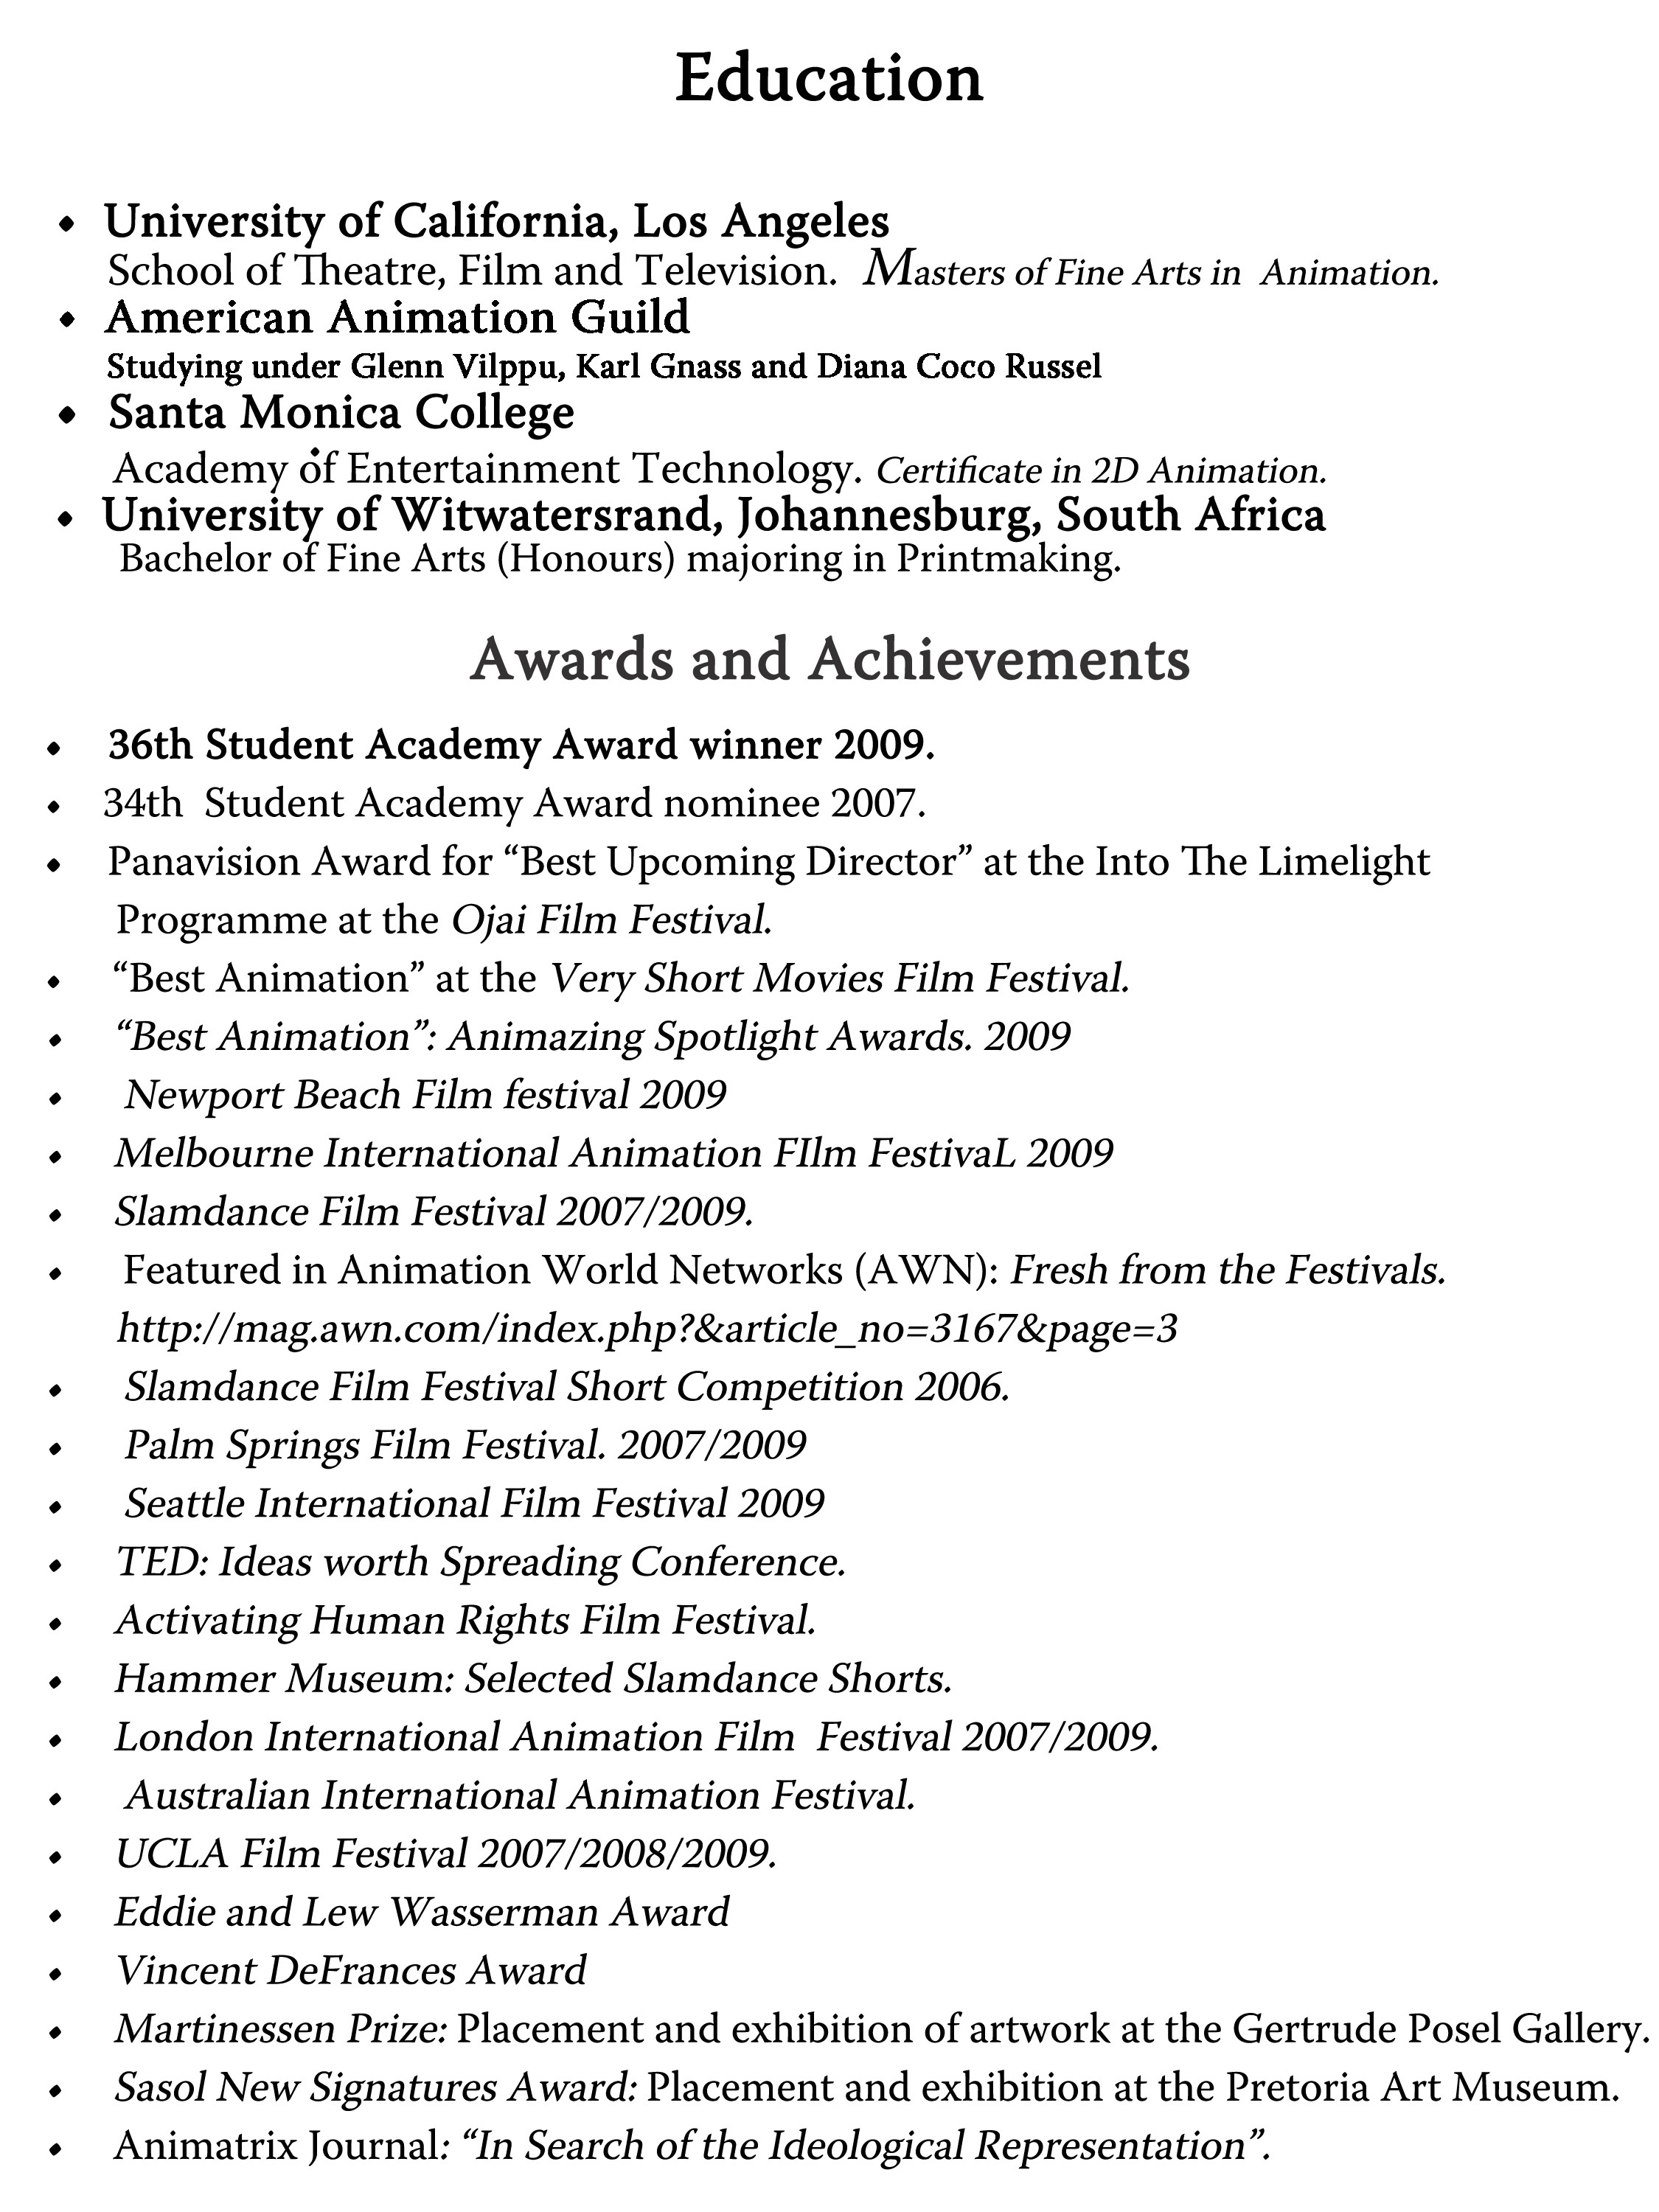 sample resume awards and achievements resume resume  resume sample resume awards and achievements sample resume awards and achievements frizzigame accomplishment essay holiday how